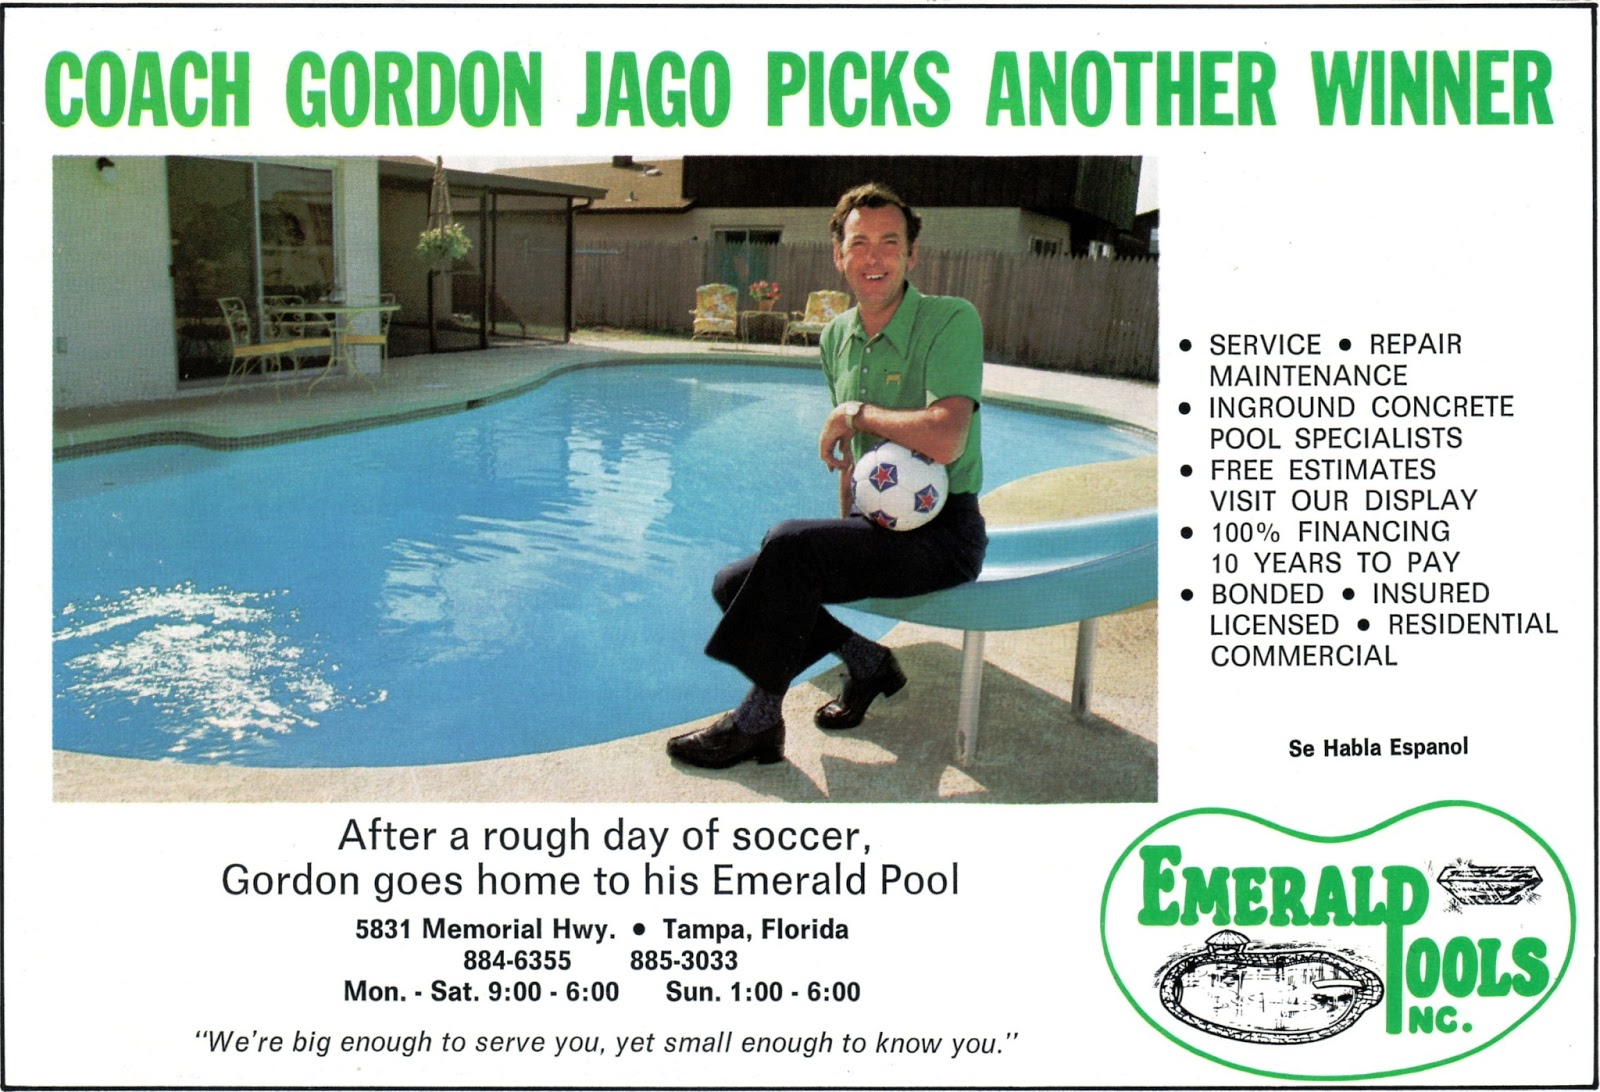 1979 Gordon Jago Emerald Pool Advert.jpg